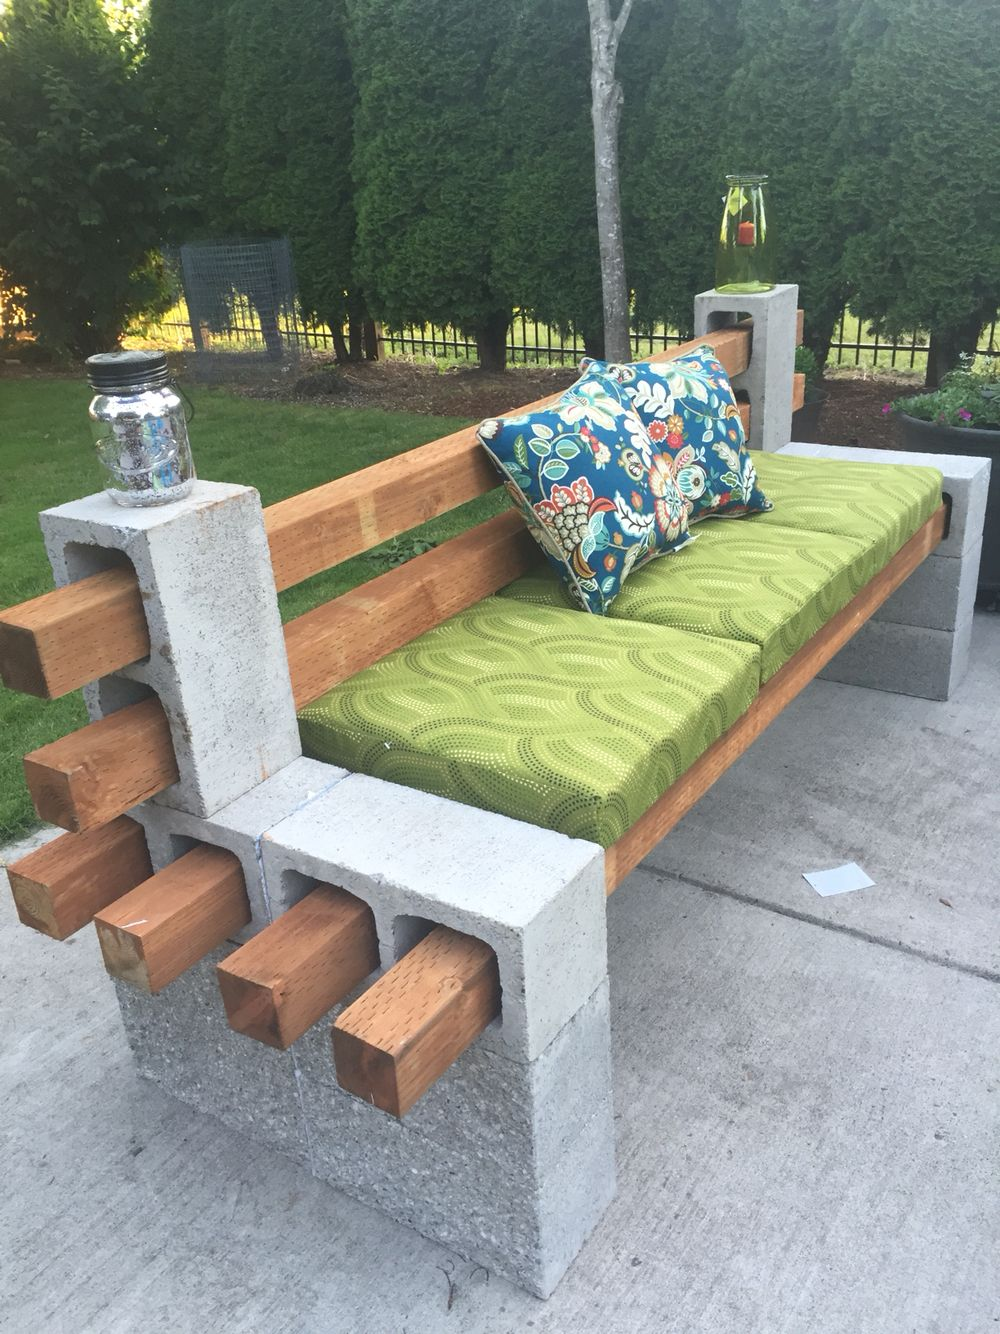 13 Diy Patio Furniture Ideas That Are Simple And Cheap Outdoor